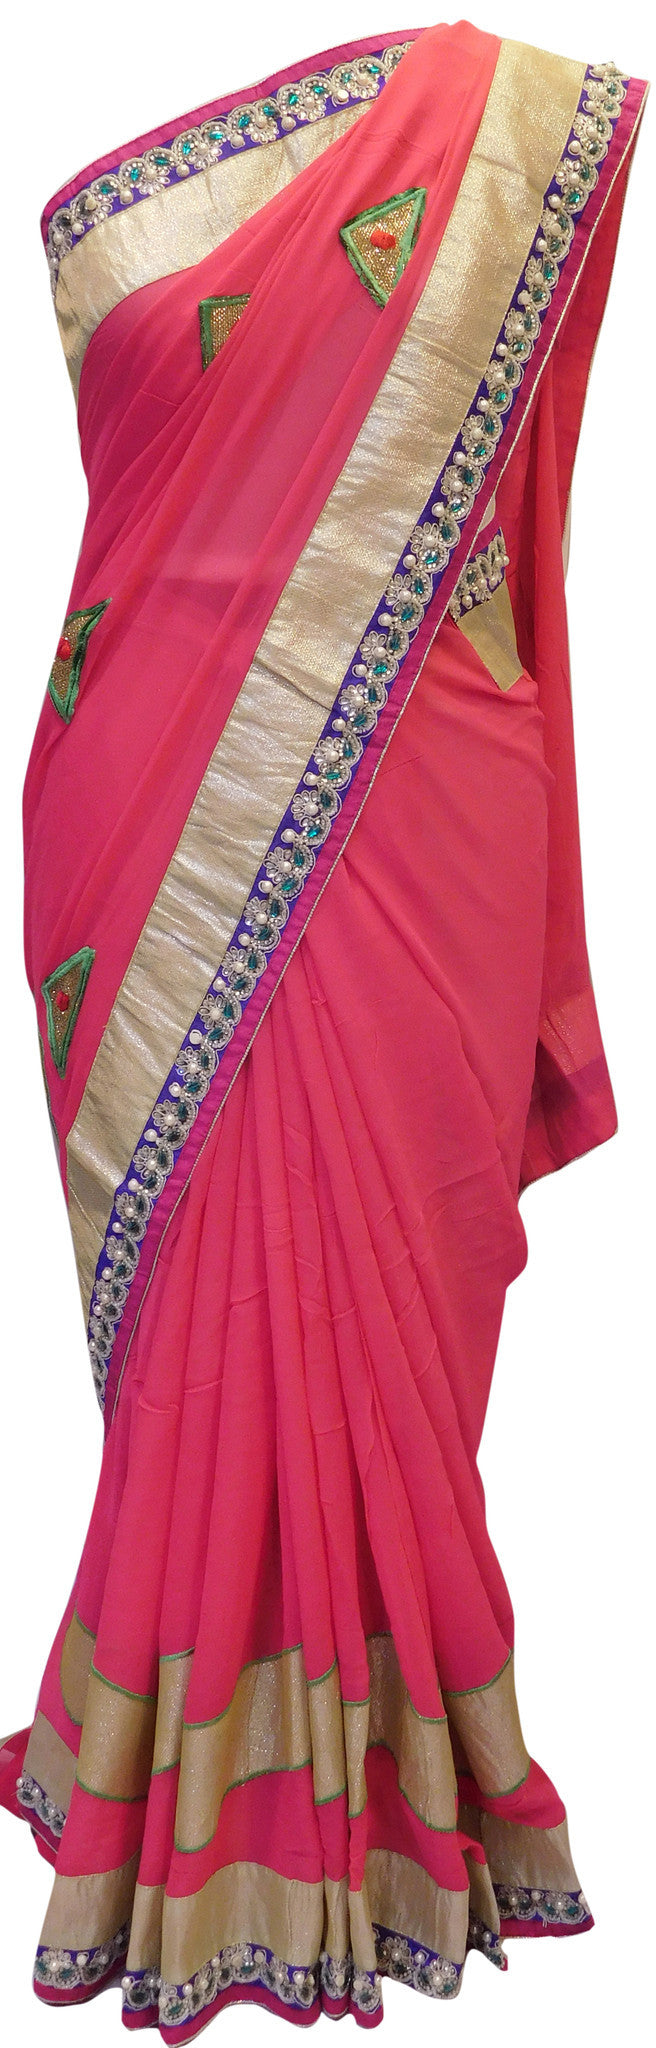 Pink Stylish Saree